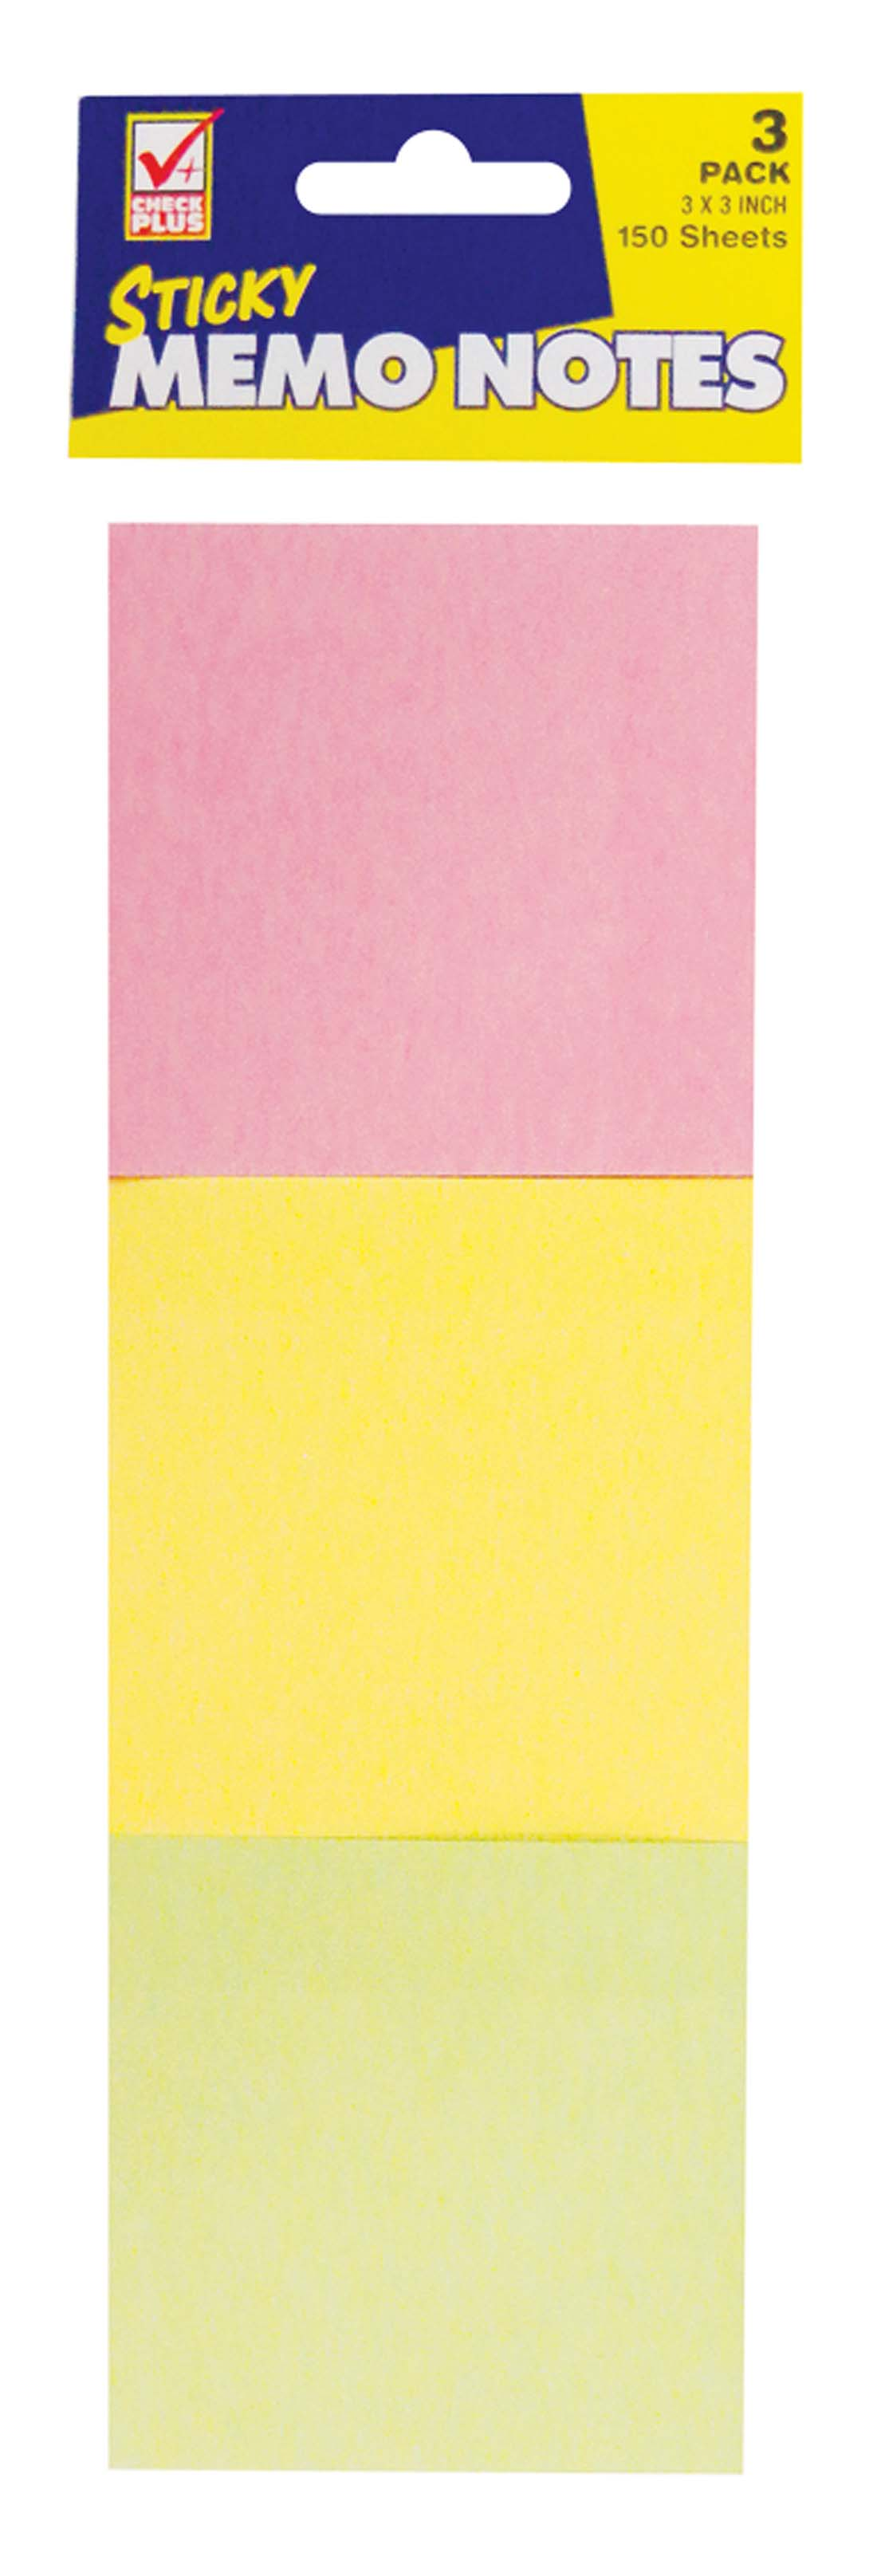 View STICKY NOTE 3 PK 150 CT 3 X 3 INCH ASSORTED COLORS